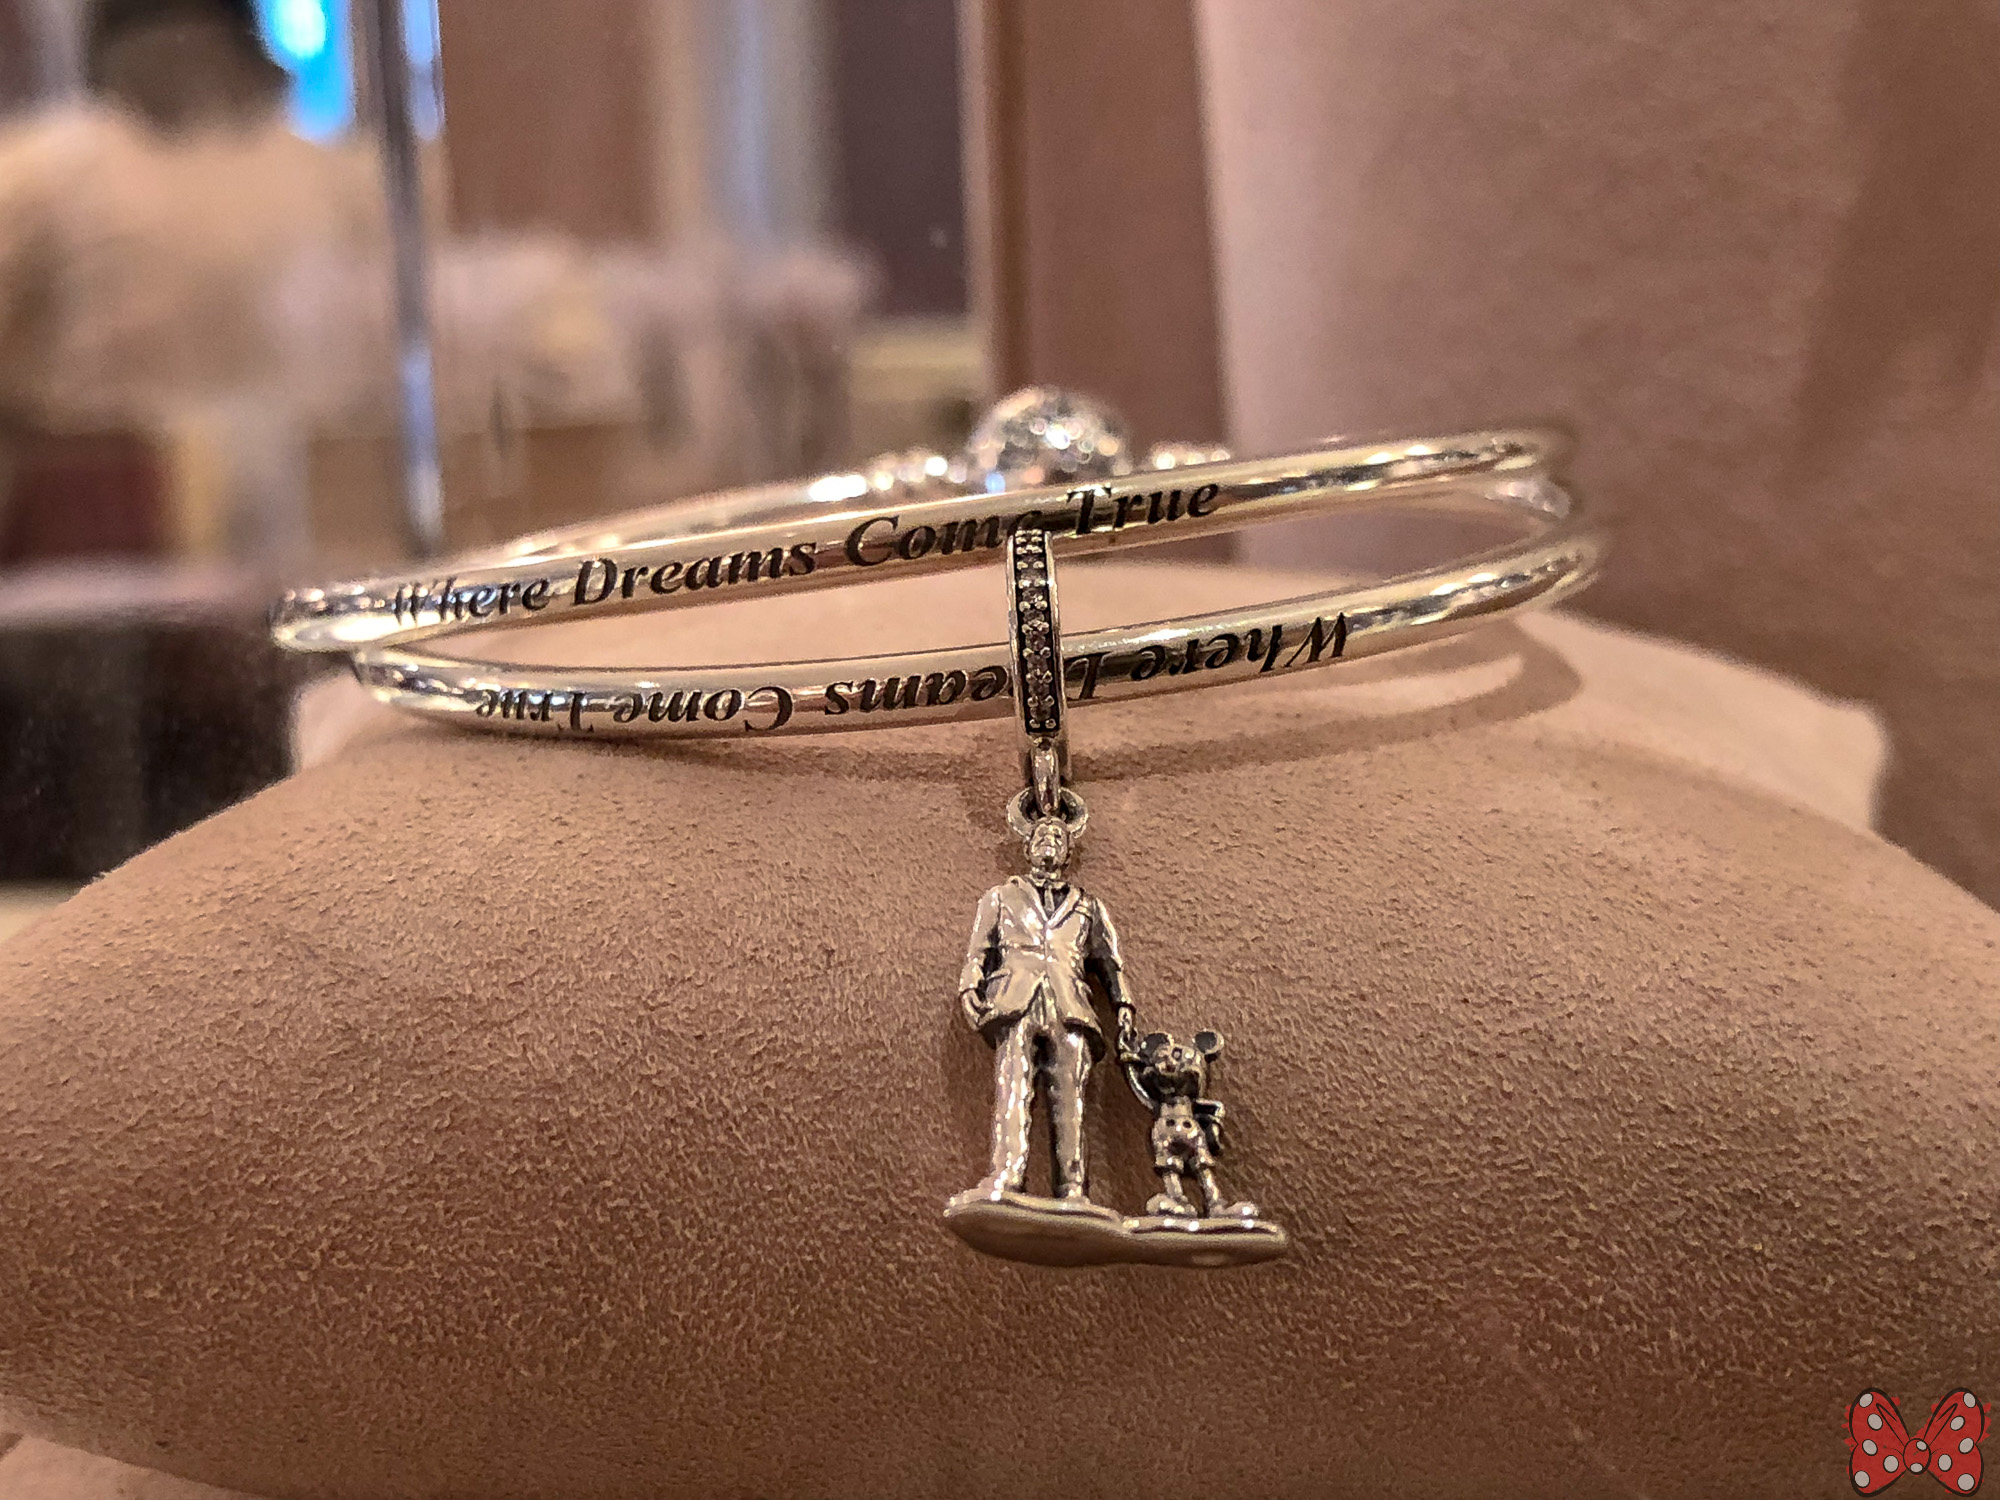 be moments any charming new if charms how charm at the have bangles reach pandora blog introducing bracelet openbangle clean questions work them about silver img open to our you specialists out bangle